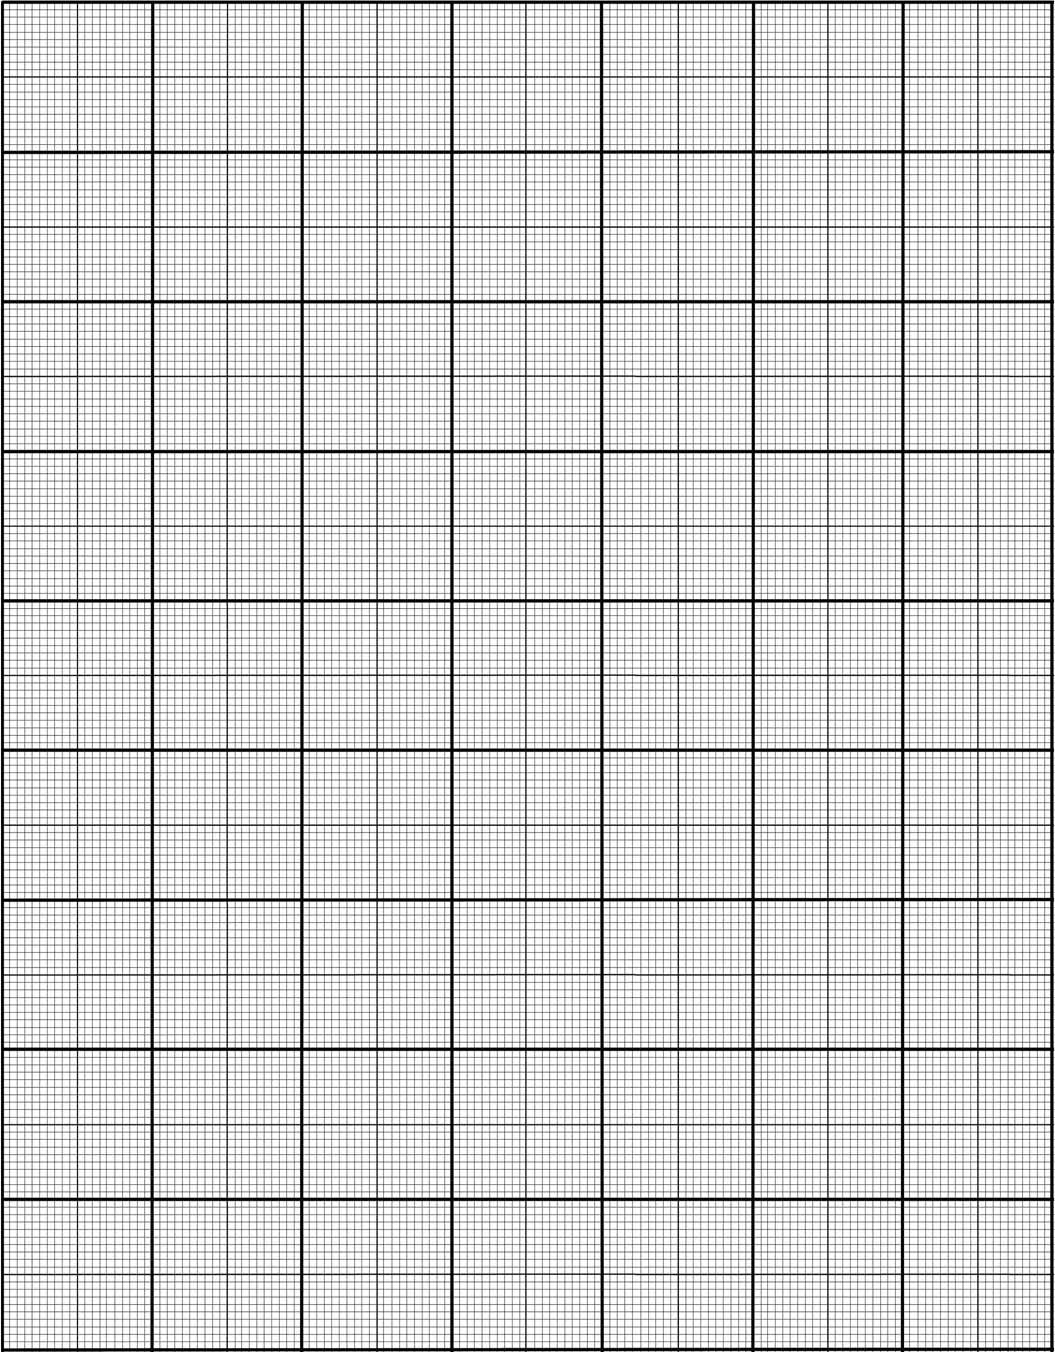 printable graph paper HD Wallpapers Download Free printable graph ...